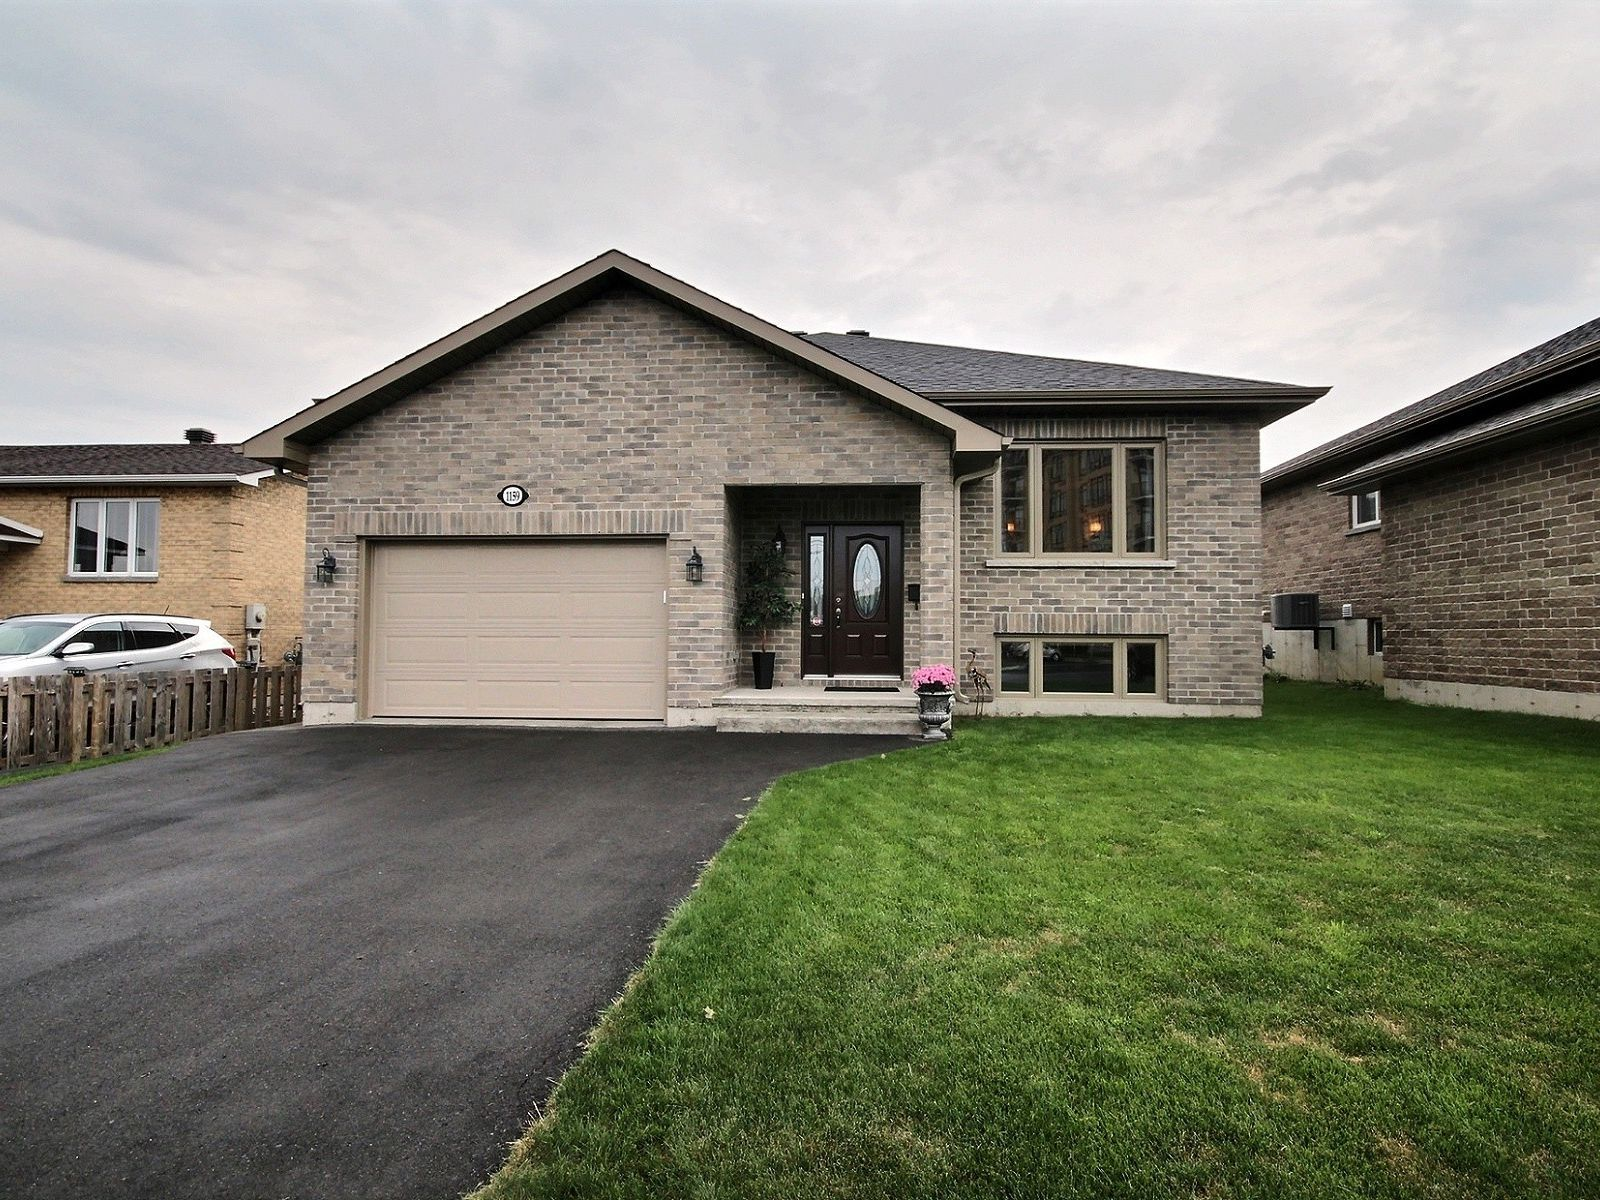 raised bungalow for sale in cornwall 1159 montreal road comfree 718282. Black Bedroom Furniture Sets. Home Design Ideas